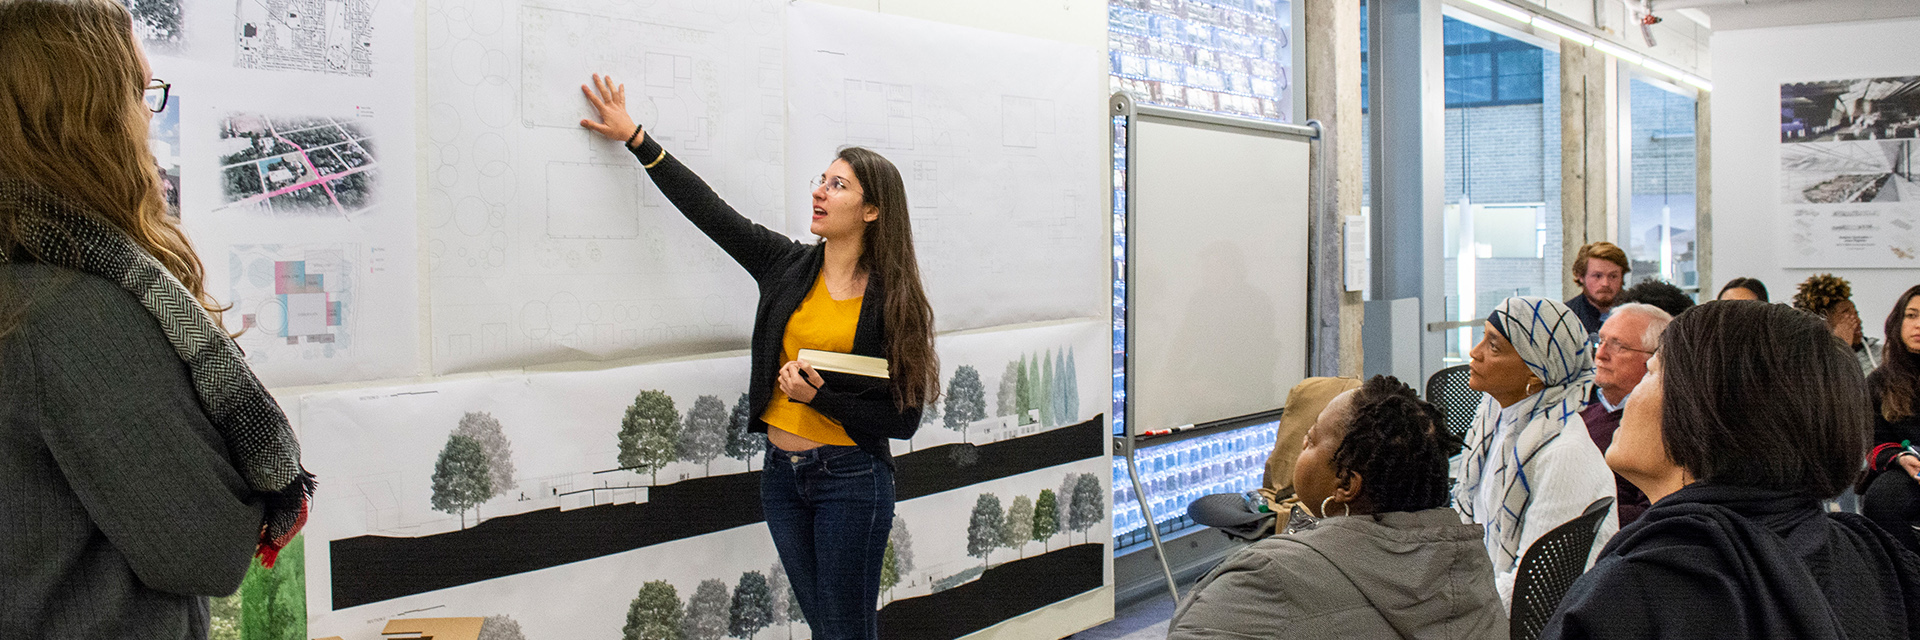 Students present their renderings during Junior and Senior Studio Presentations in the Hinman Research Building